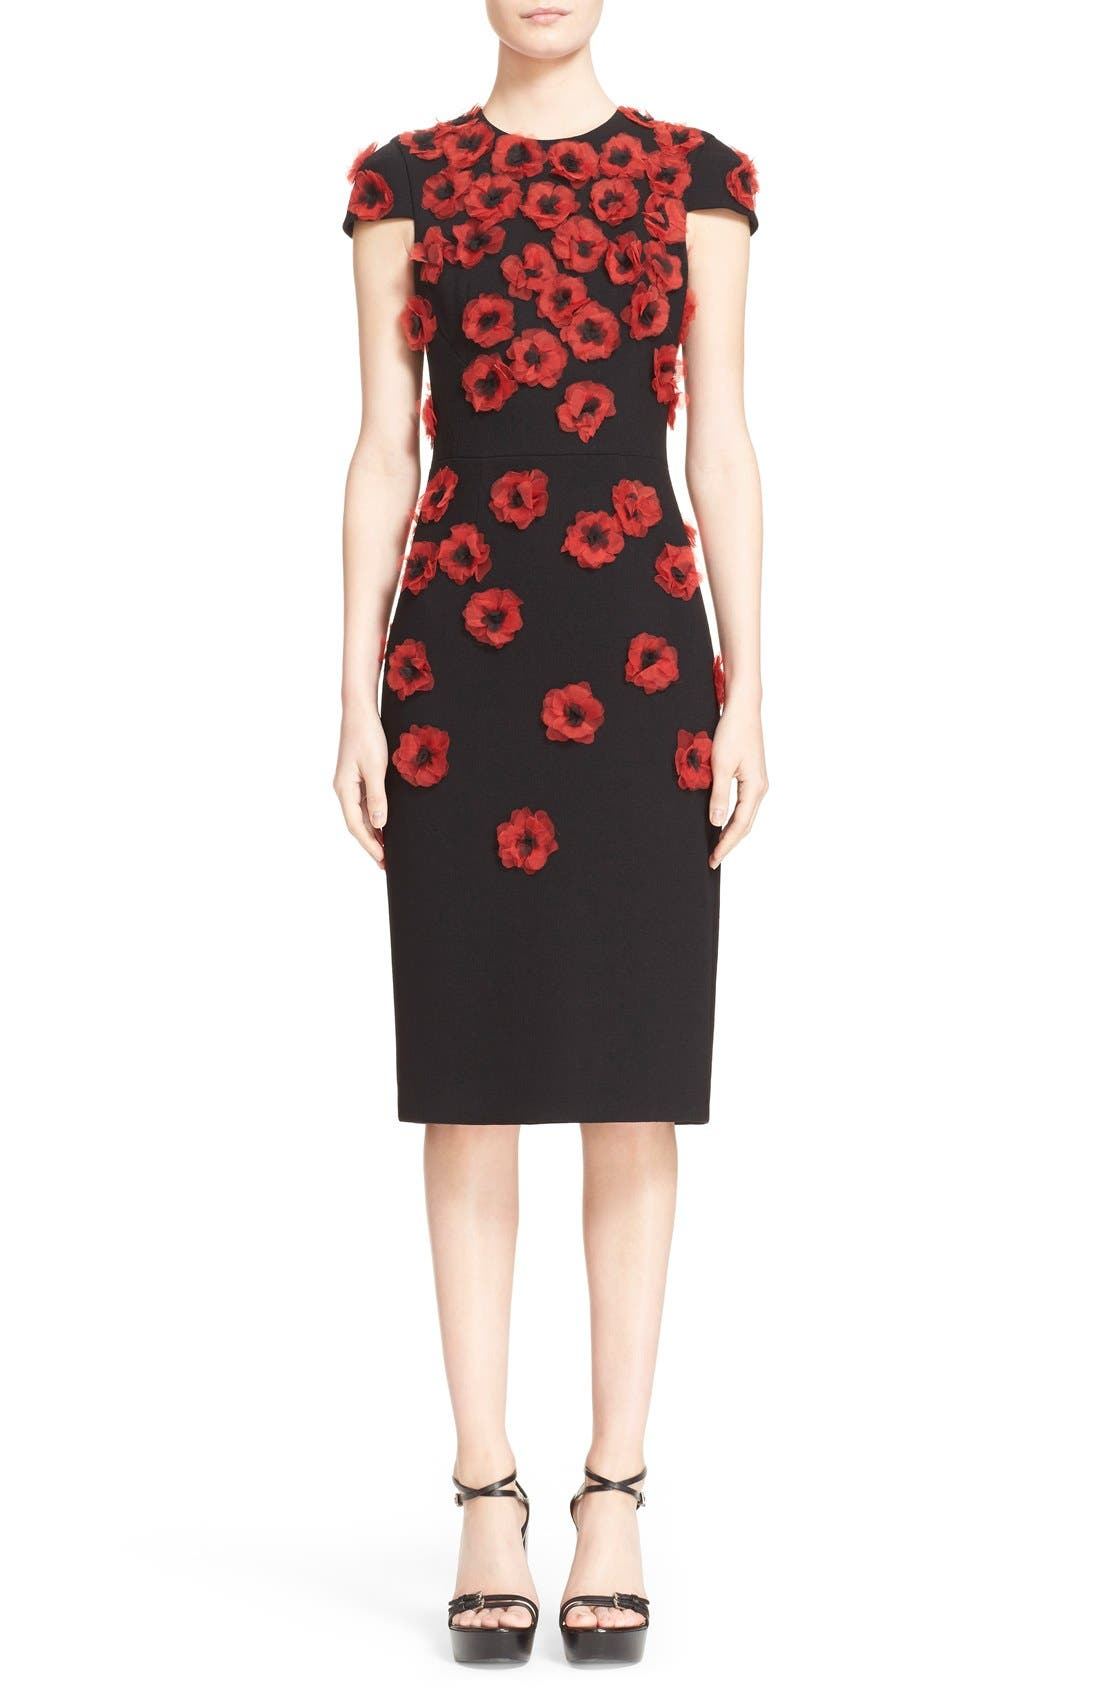 'Crimson Poppy' Floral Embellished Sheath Dress,                             Main thumbnail 1, color,                             001